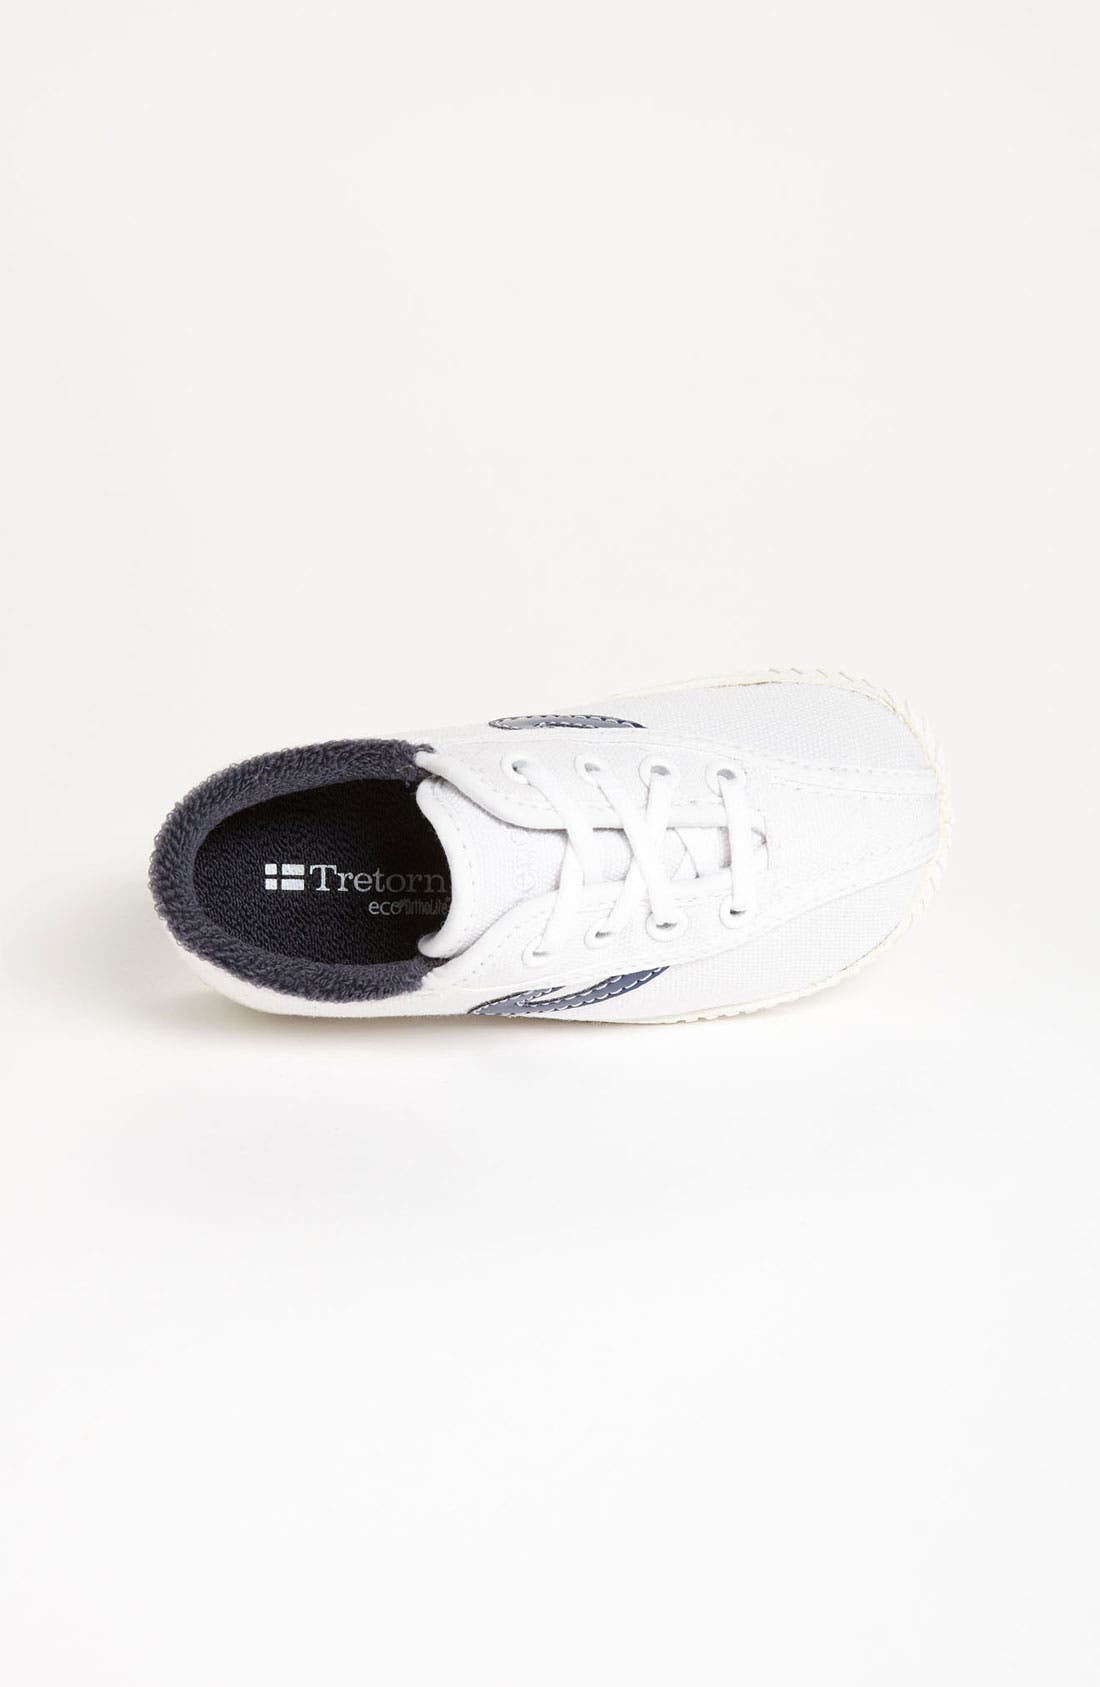 Alternate Image 3  - Tretorn 'Nylite' Tennis Shoe (Baby, Walker & Toddler)